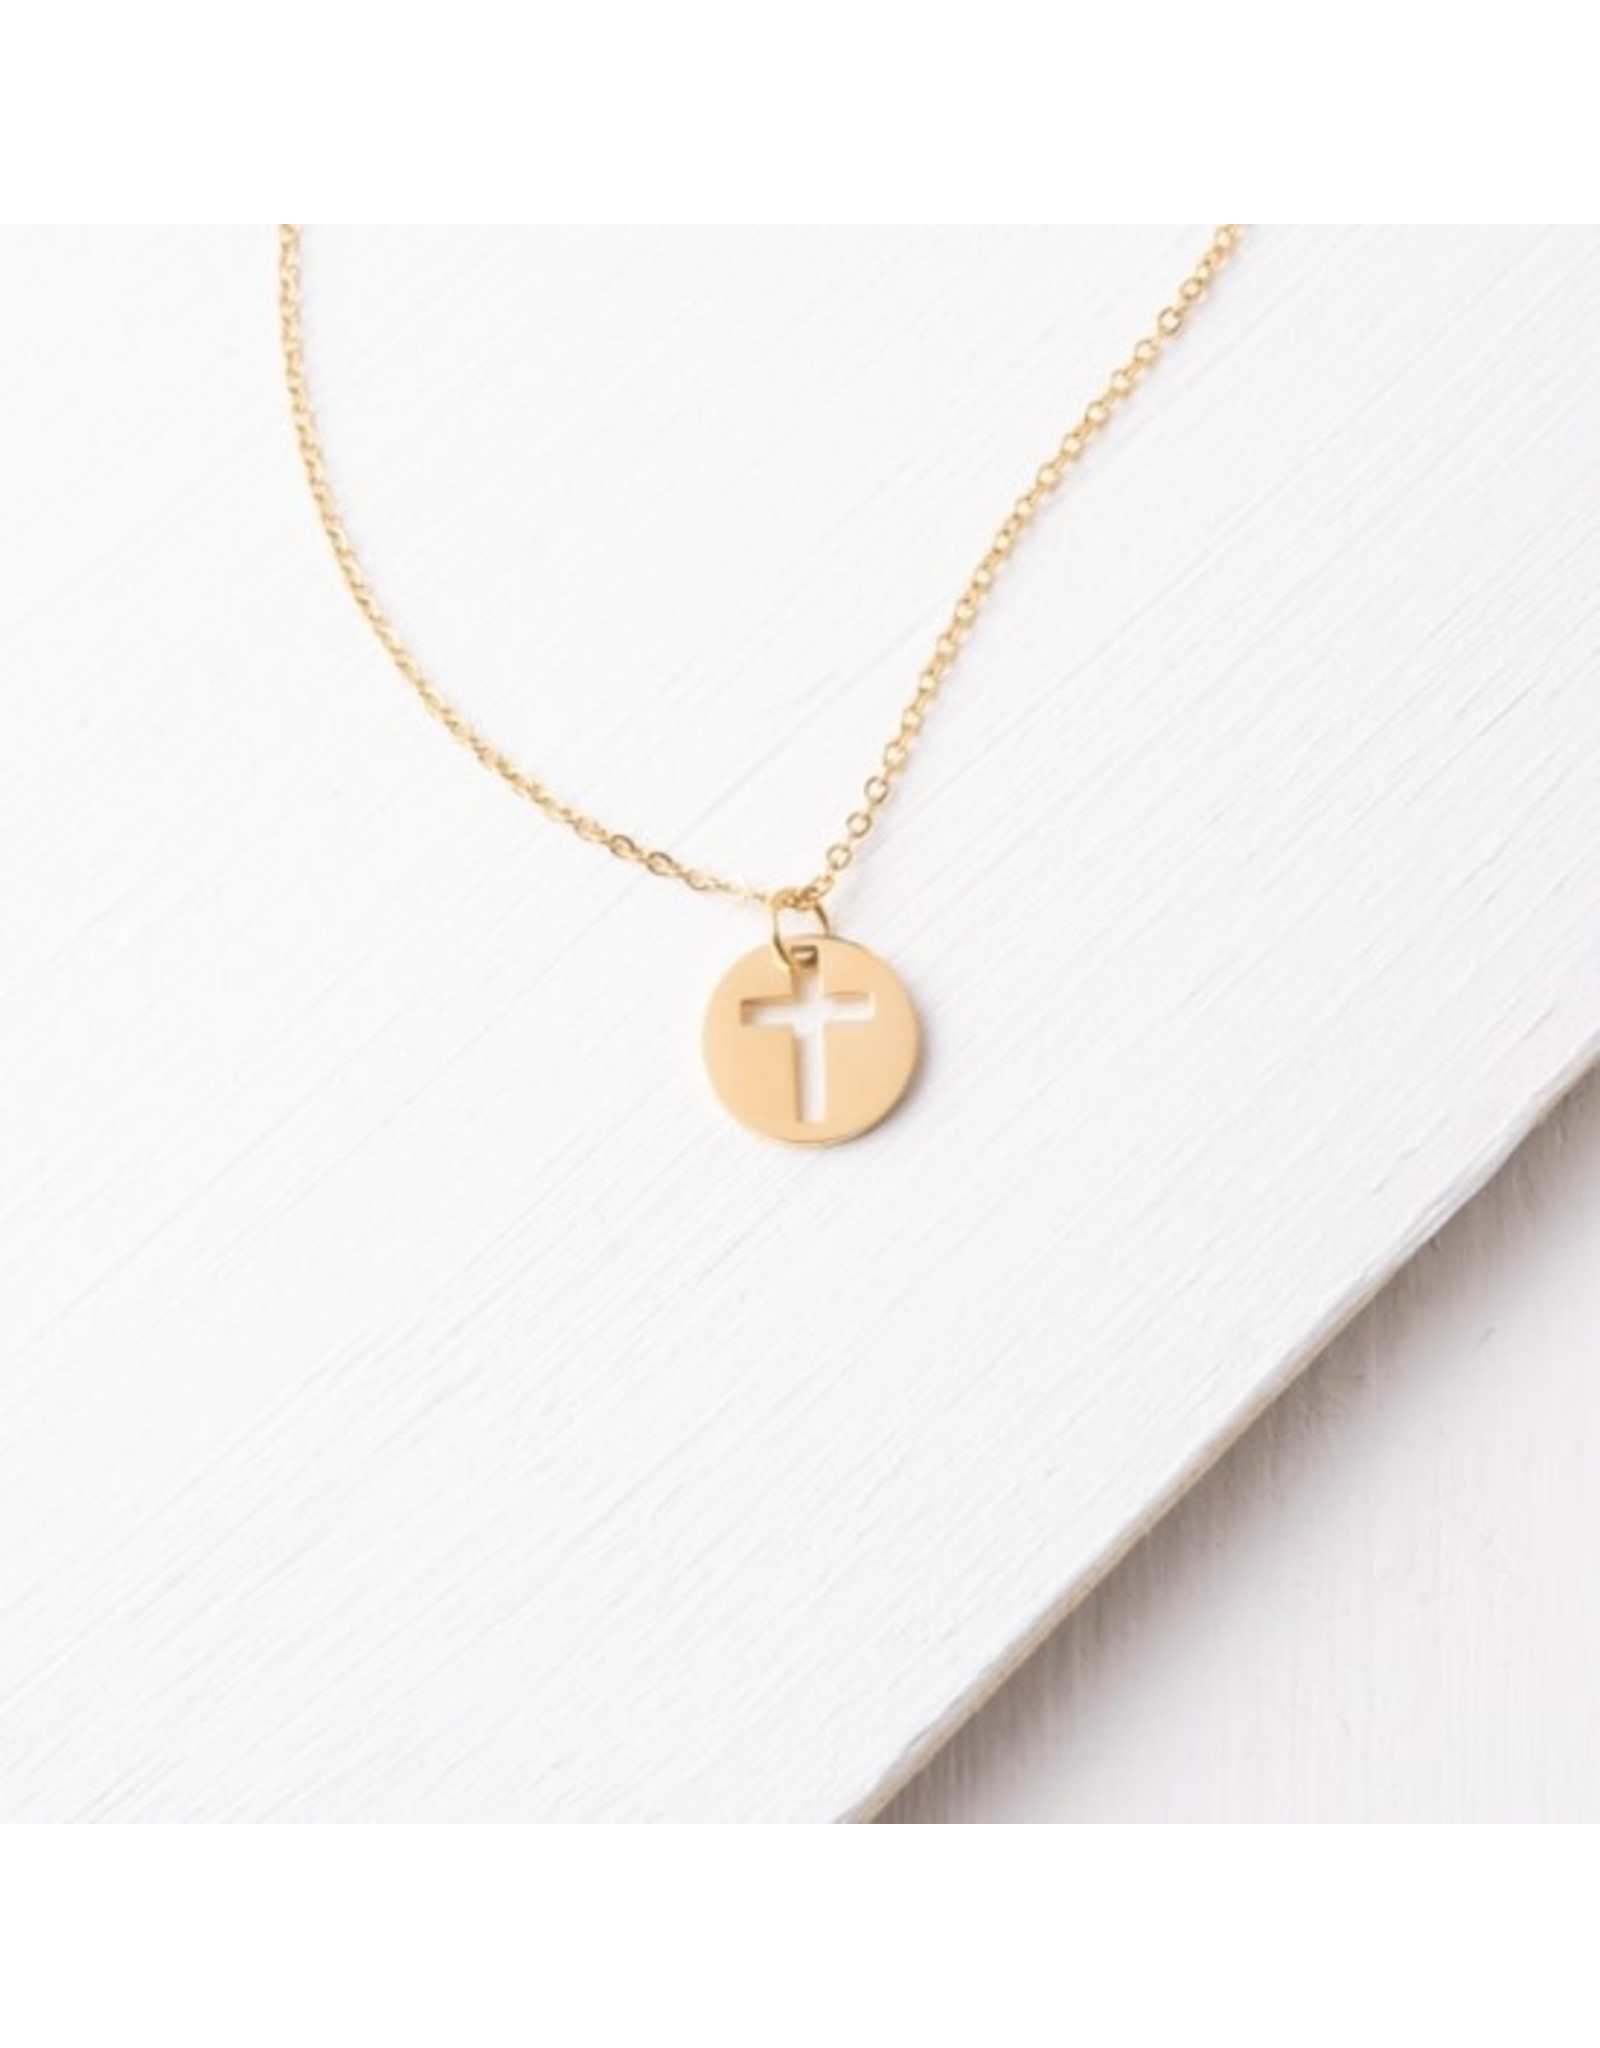 Carolyn Gold Cross Pendant Necklace, China